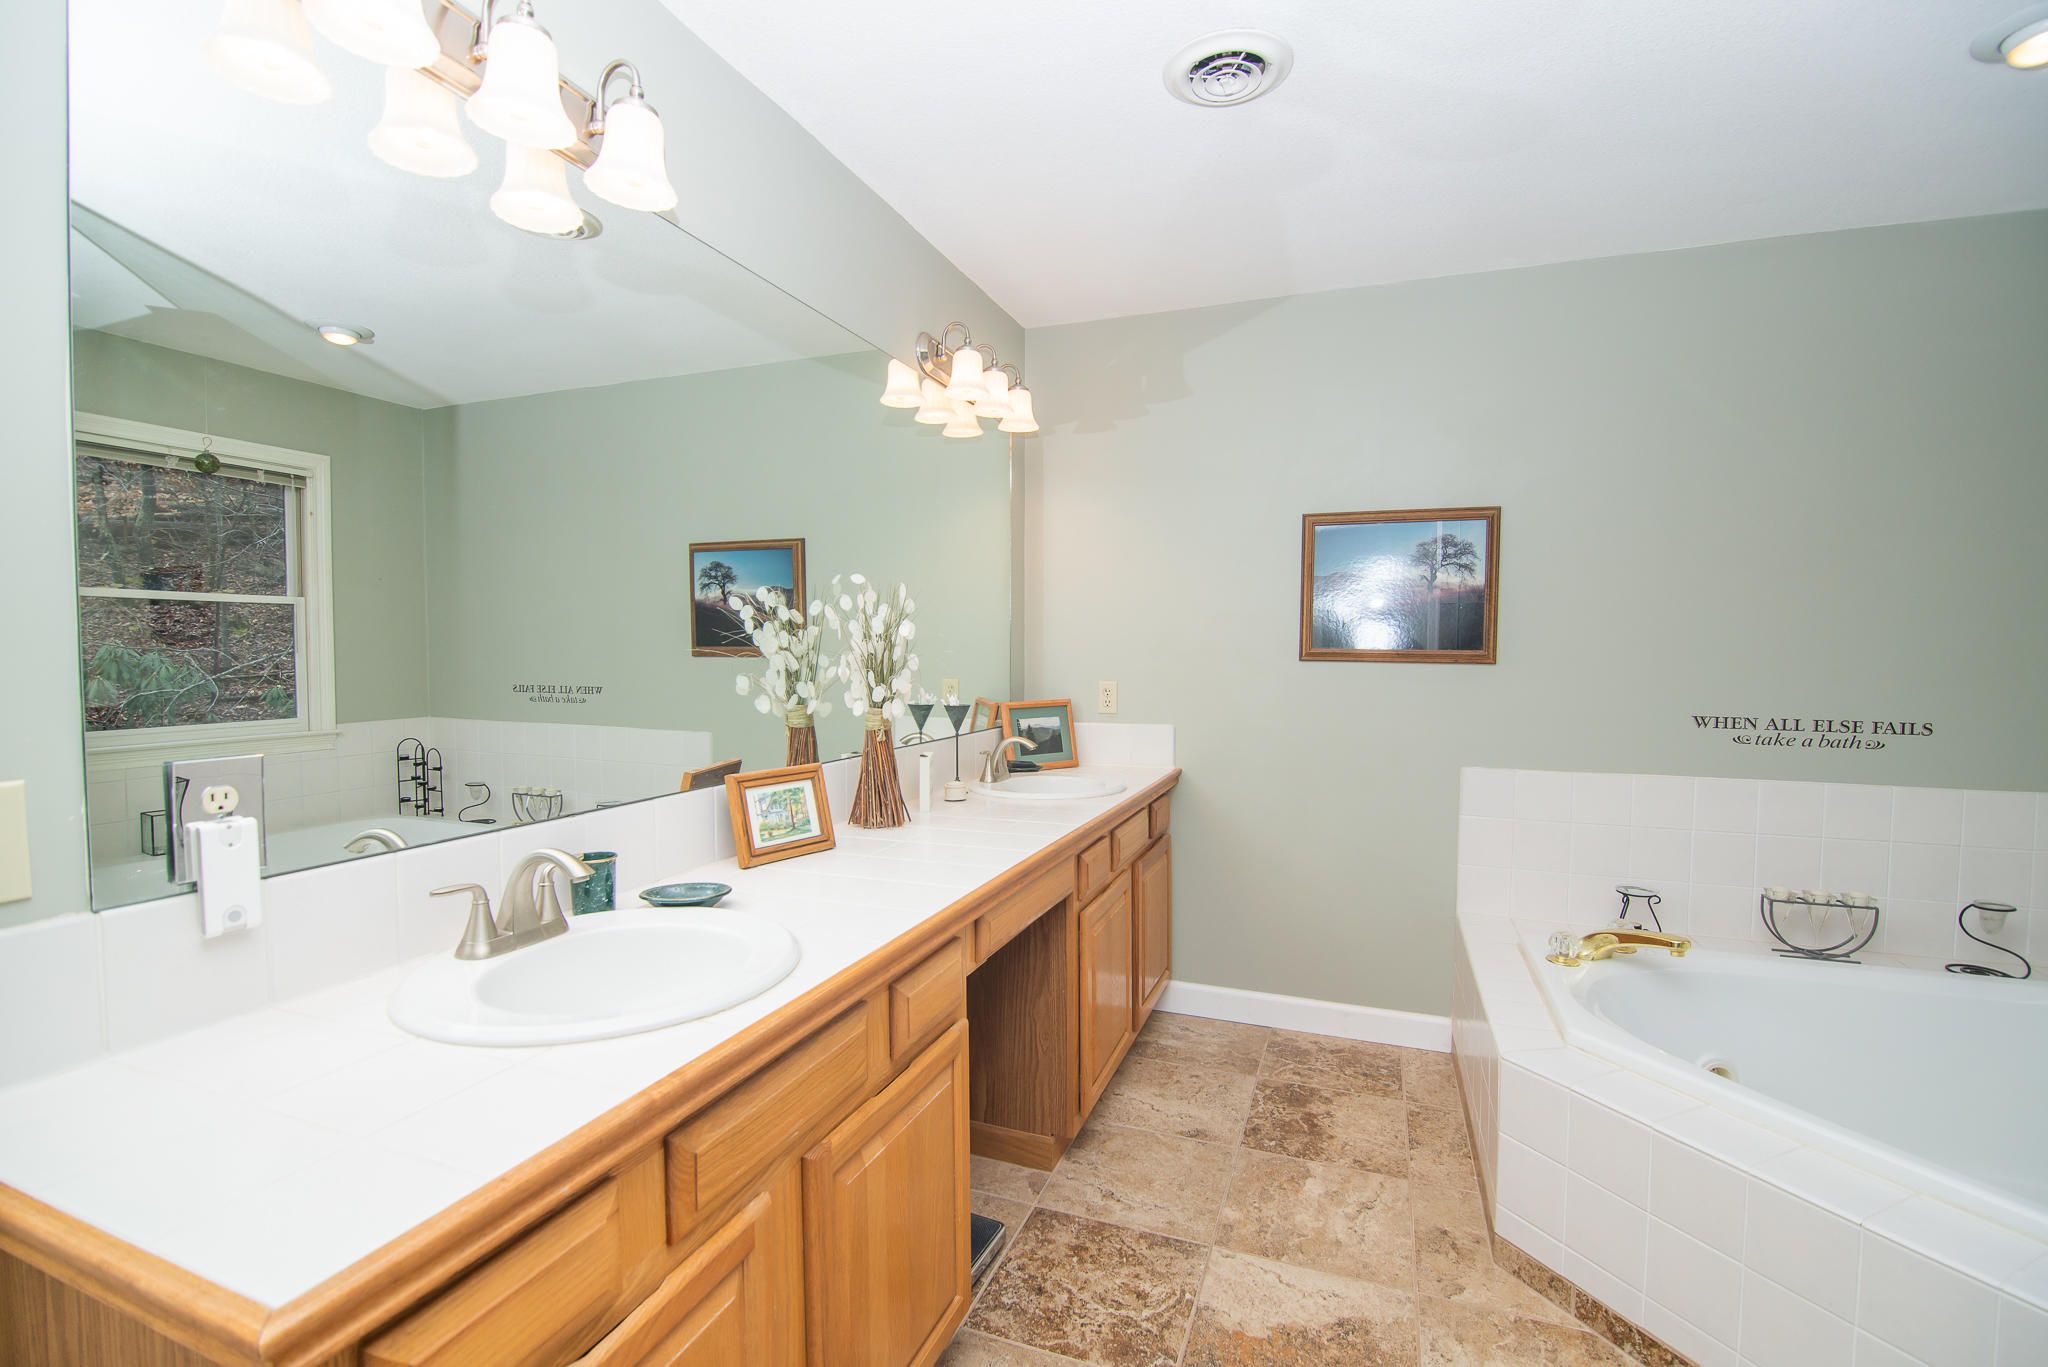 Master bath has radiant floors